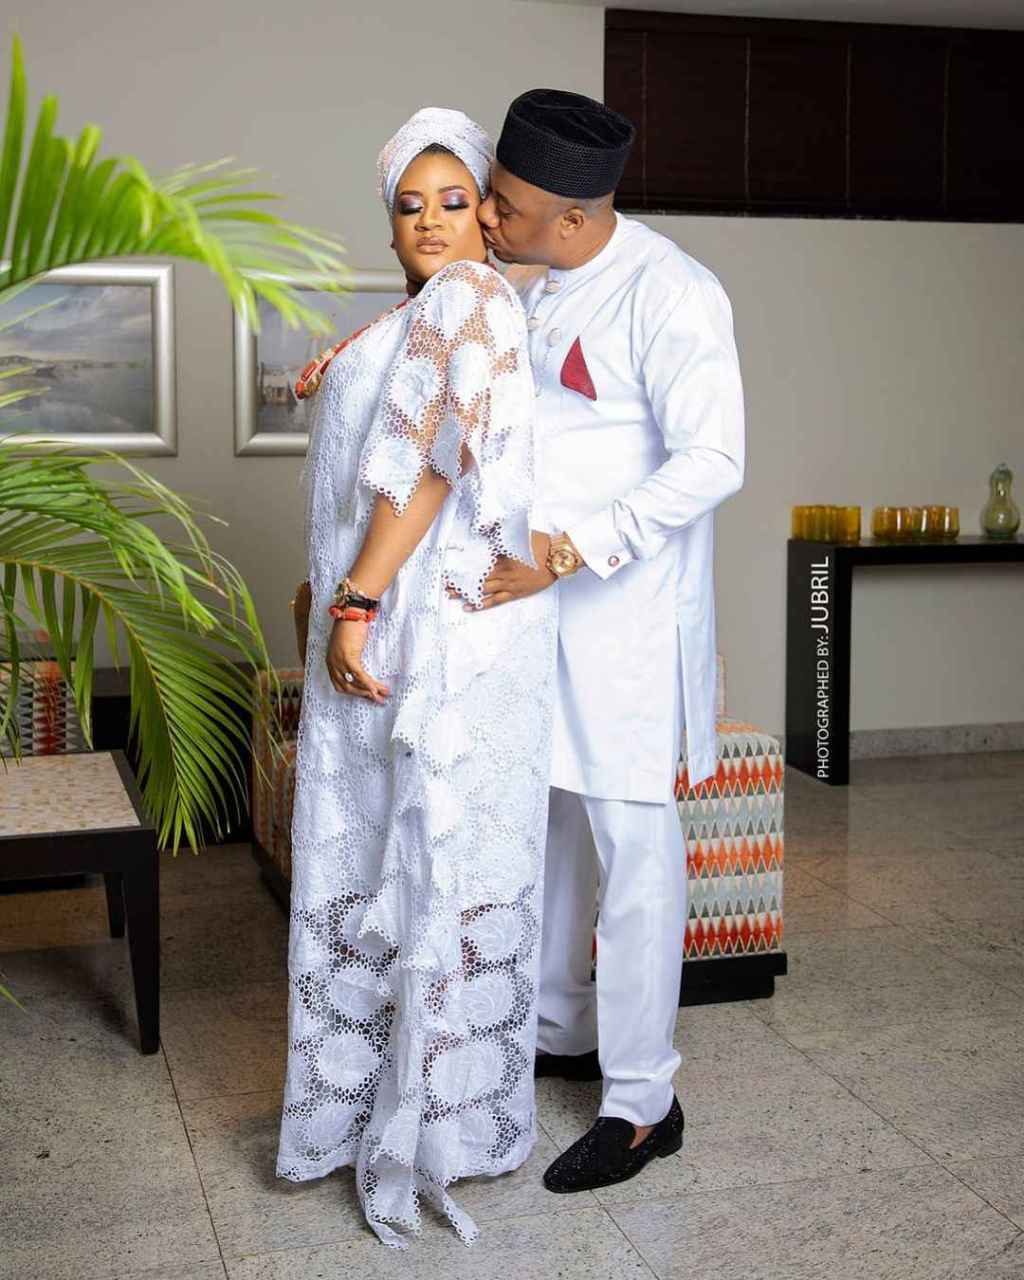 Nnkechi blessing and her husband